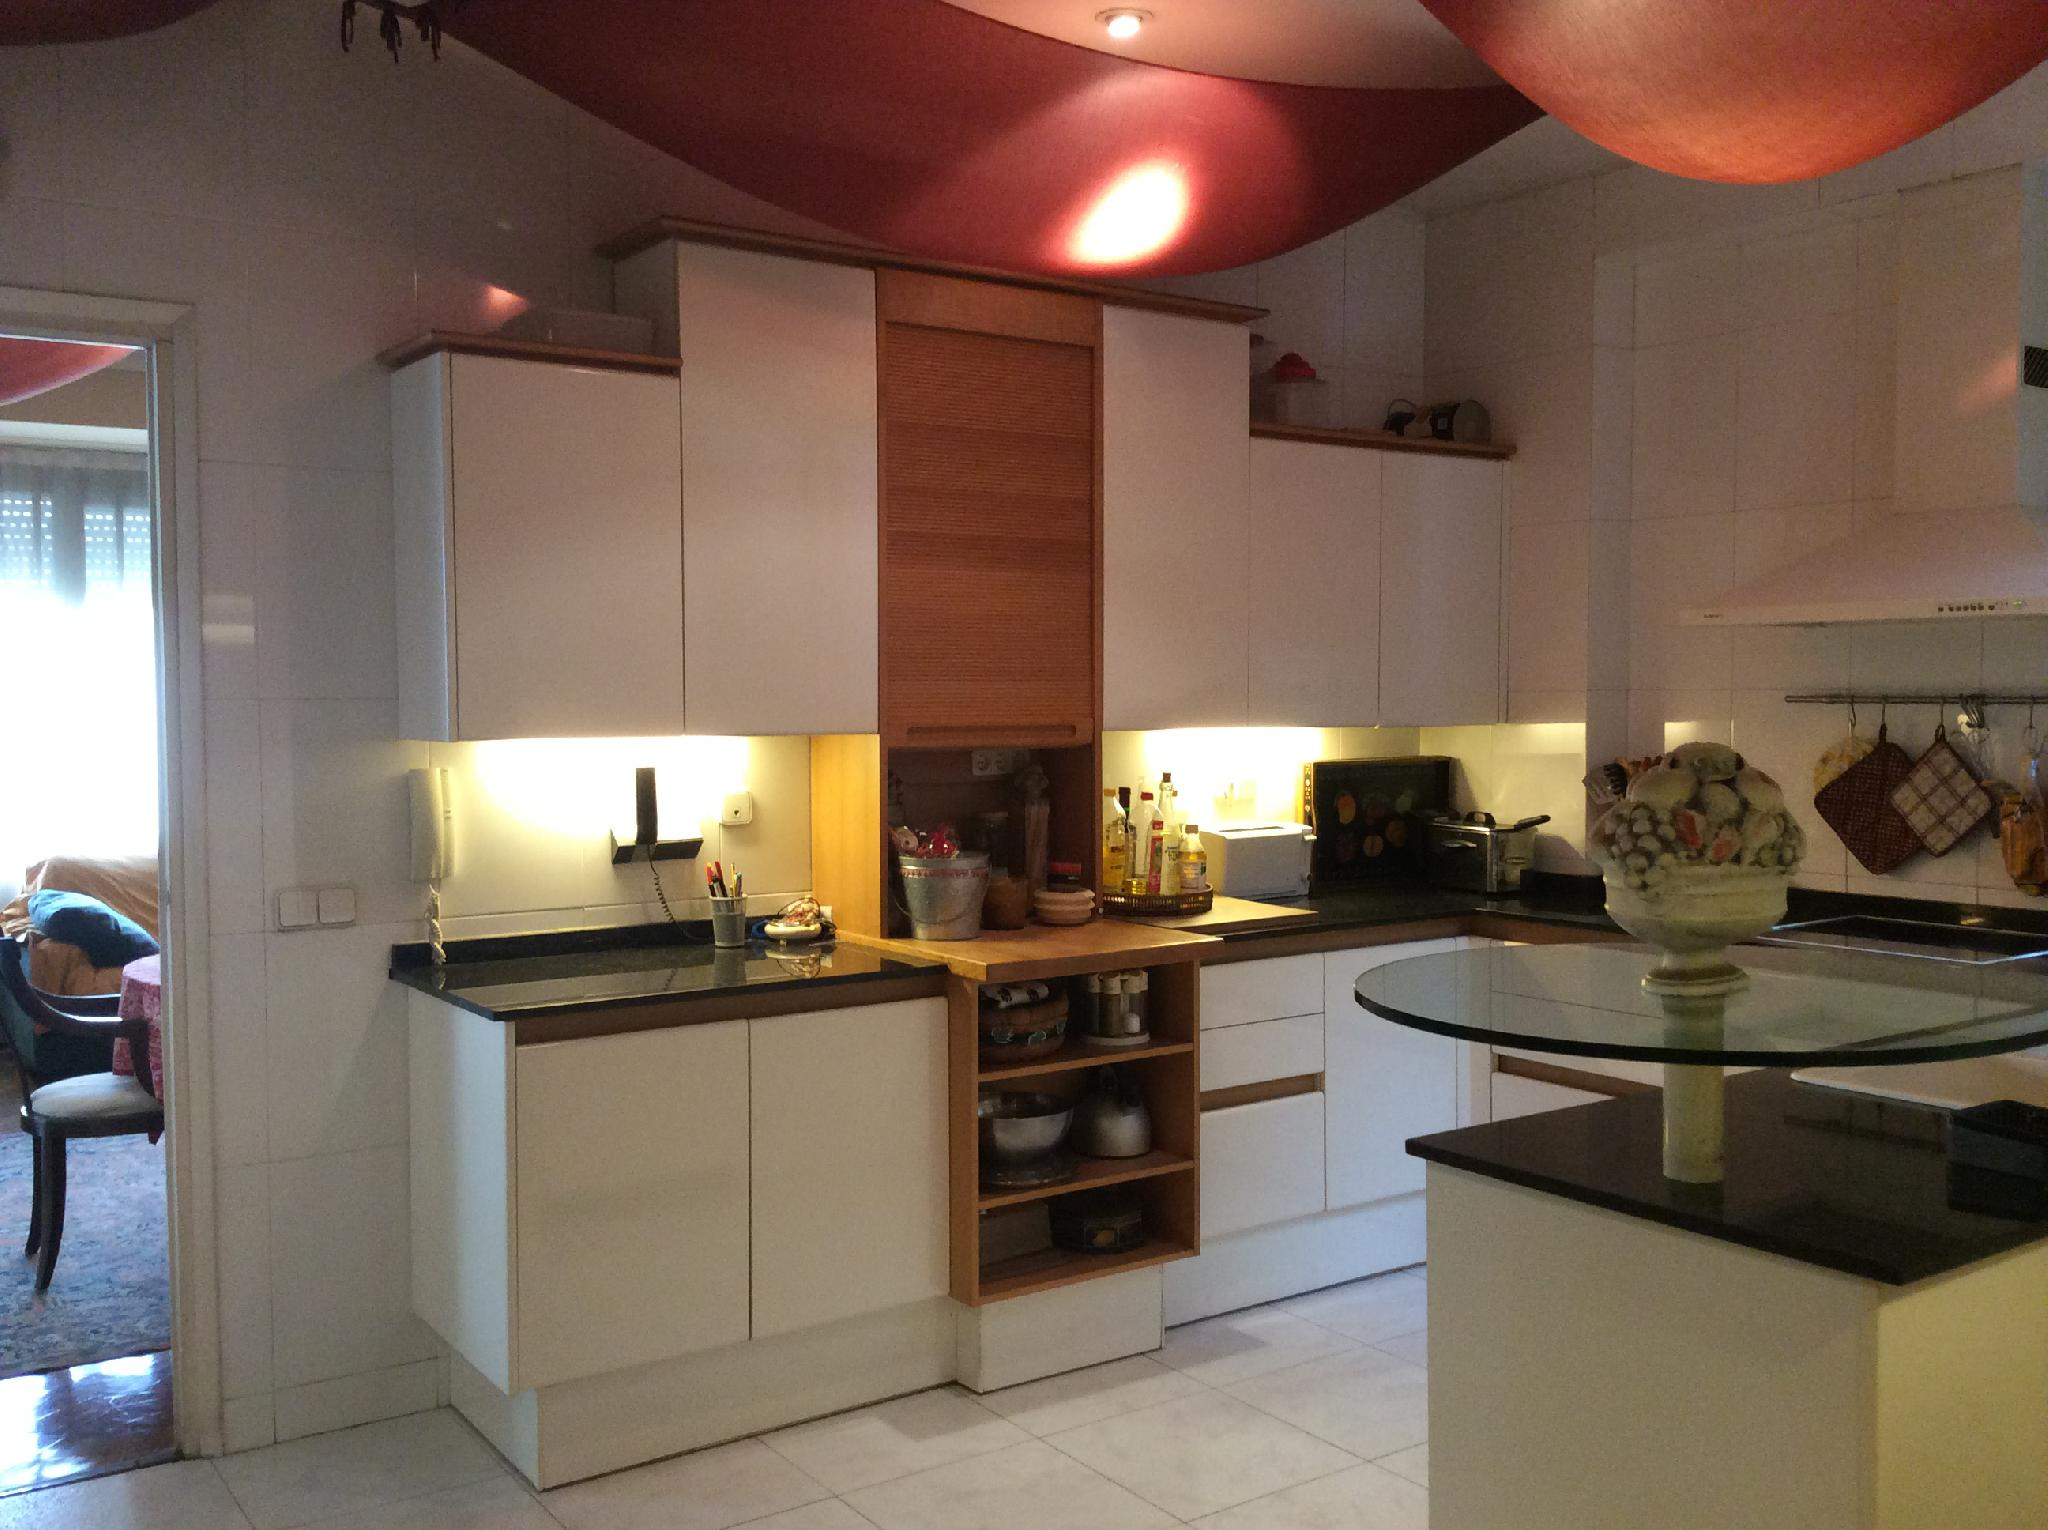 flat-for-sale-in-muntaner-vía-augusta-eixample-esquerra-in-barcelona